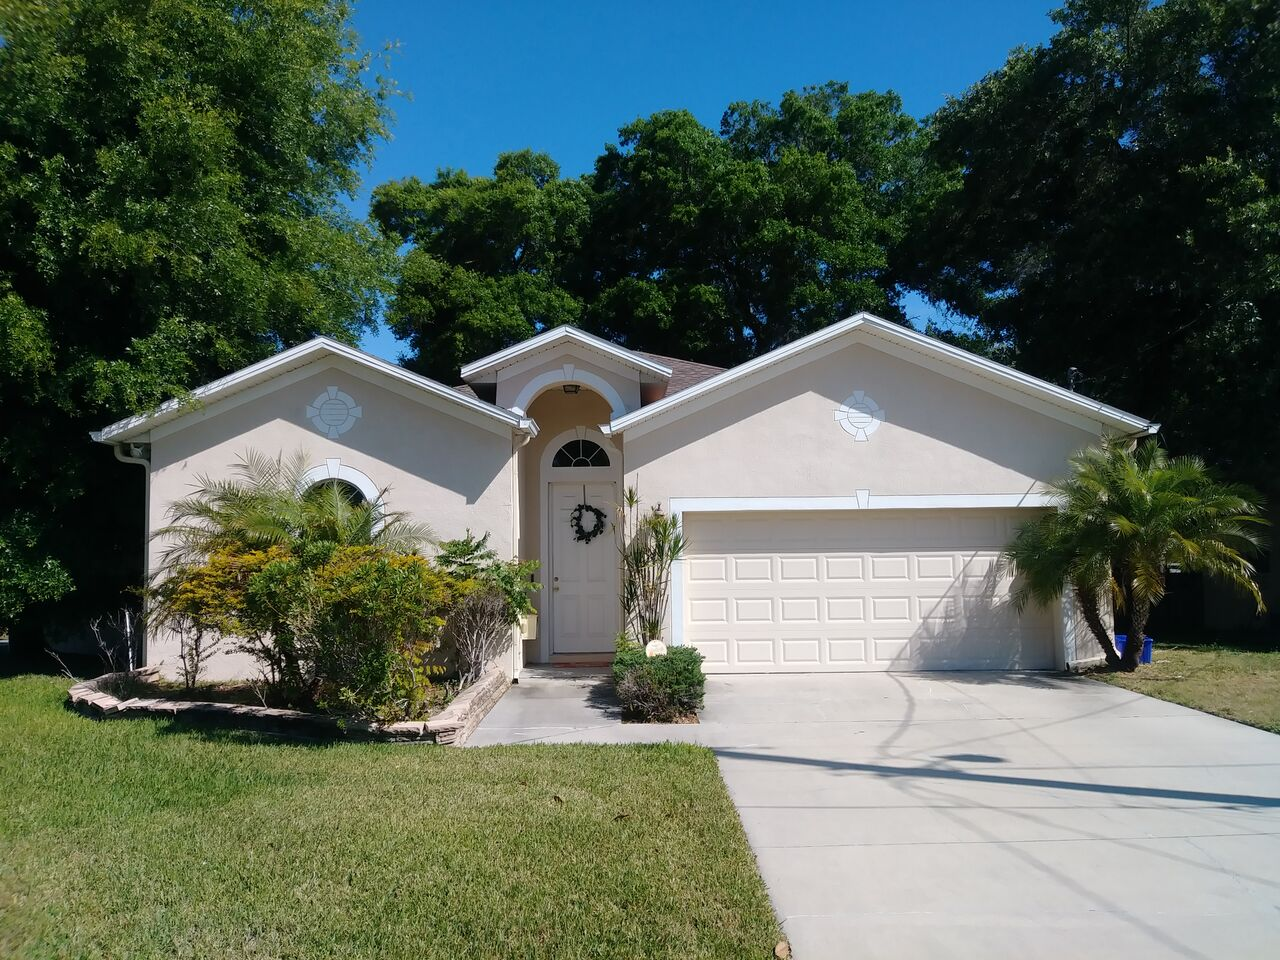 Photo of 11102 Happy Acres Ln, Riverview, FL, 33578